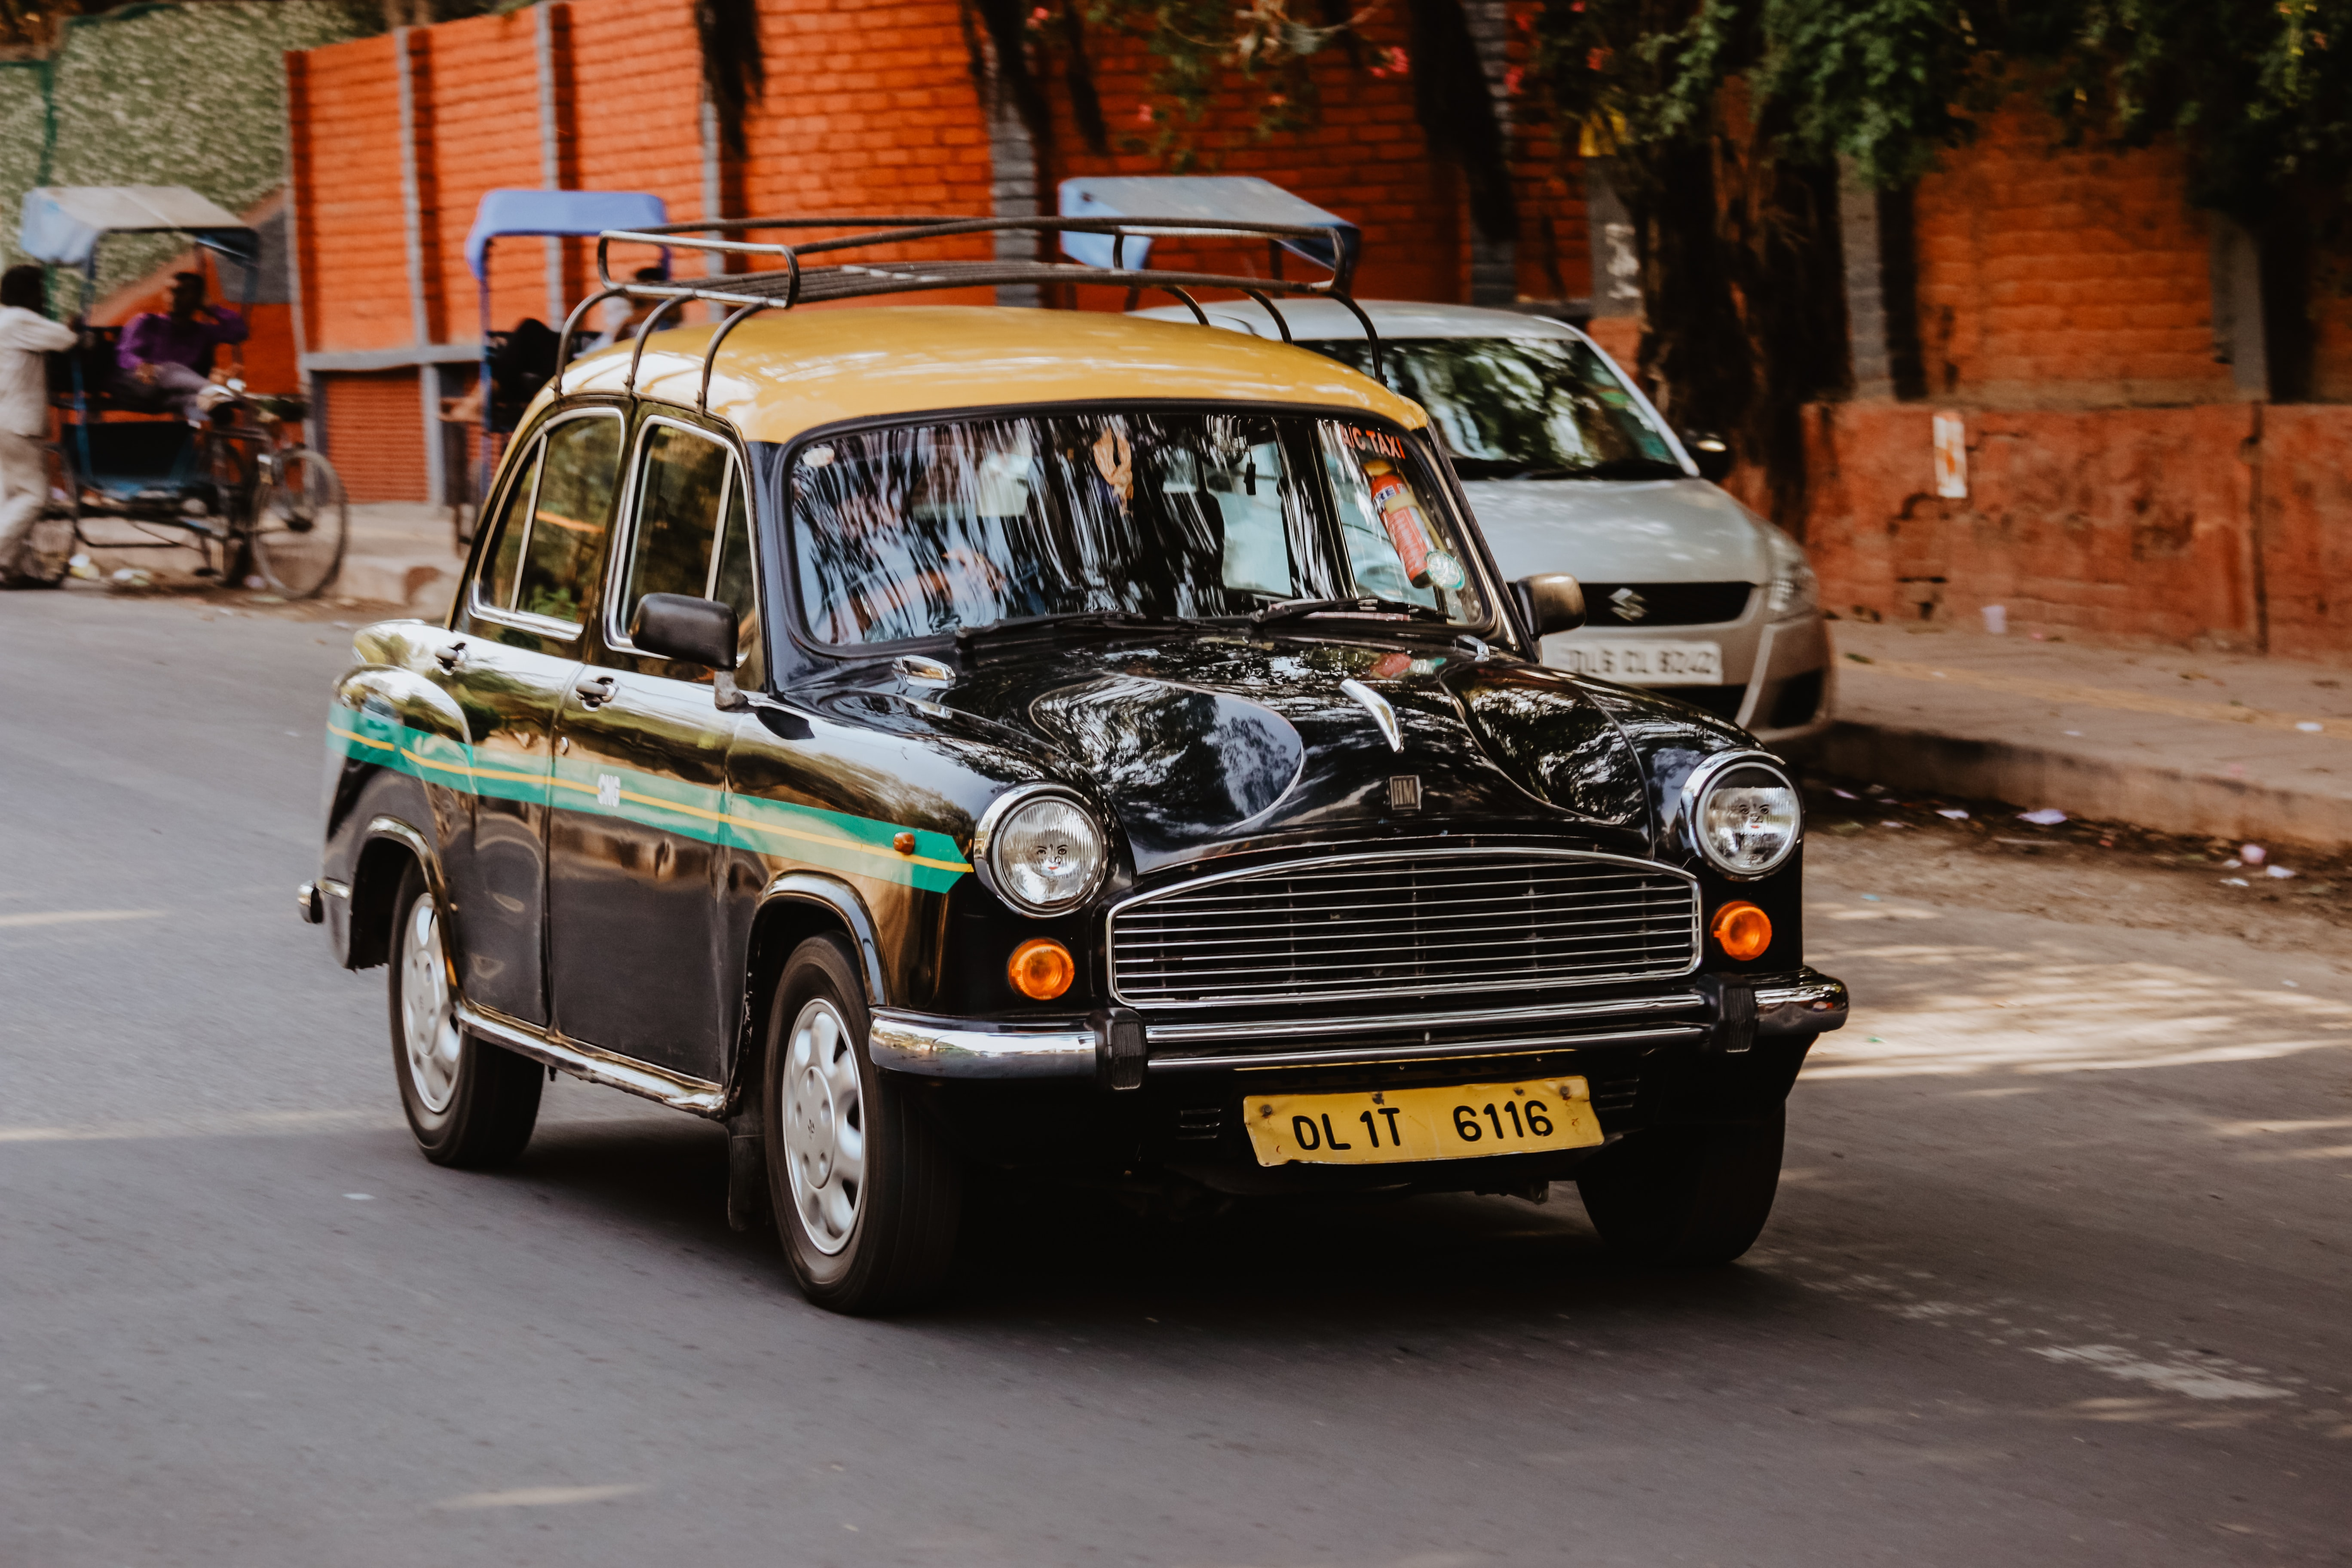 Taxis-Sodha-Travel